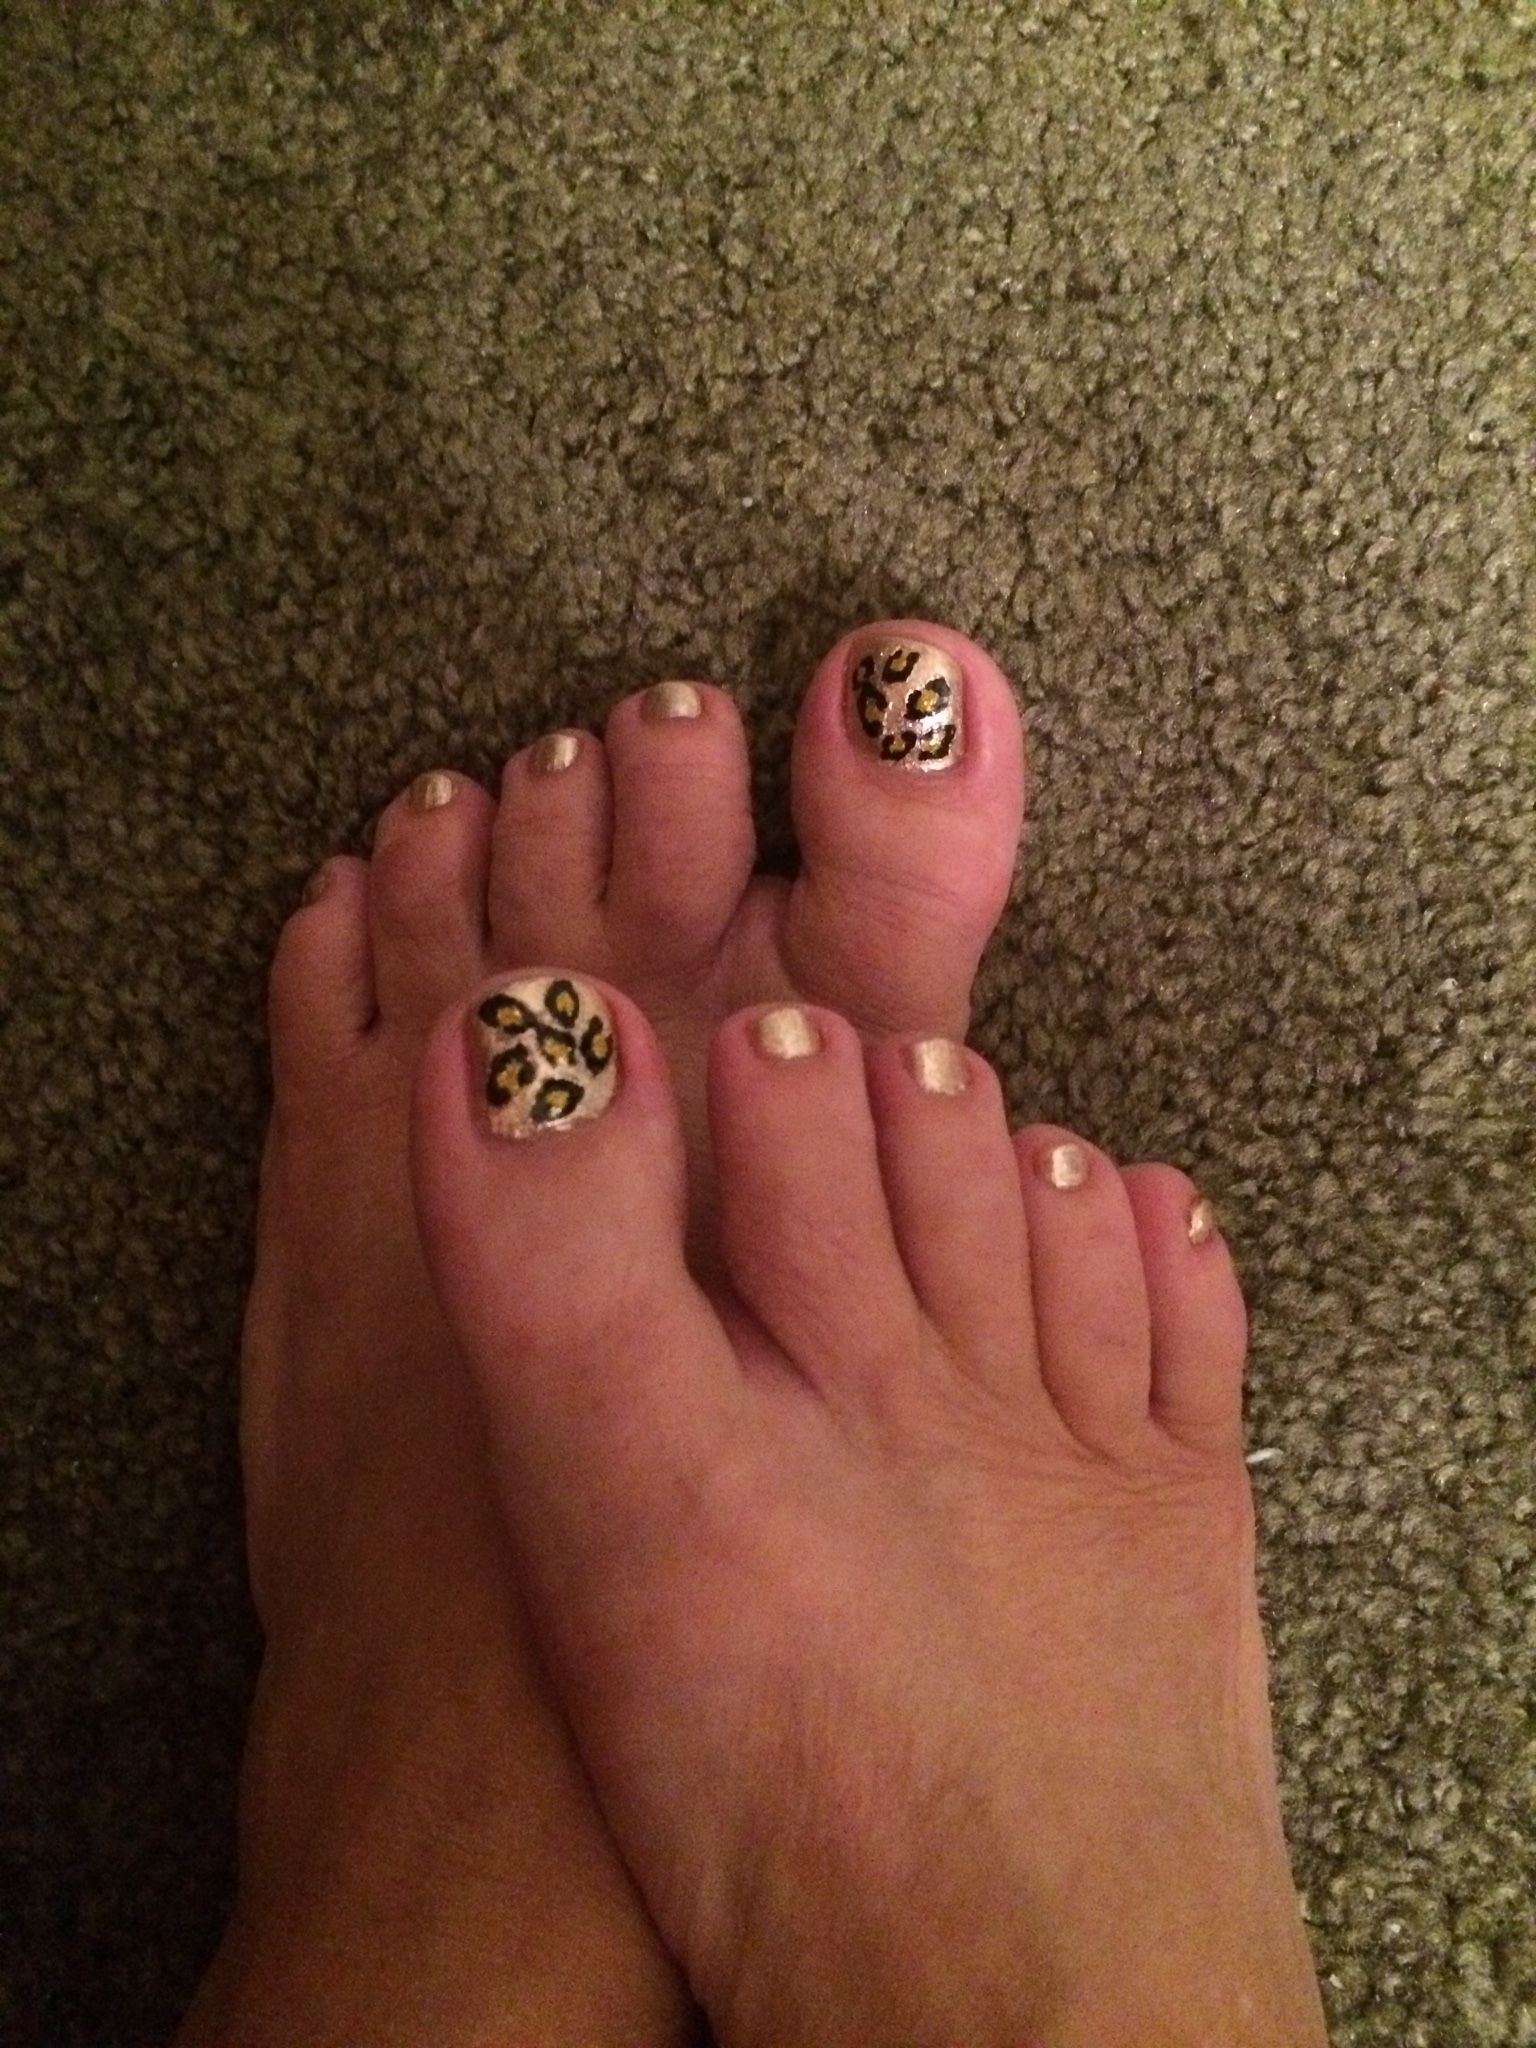 My first try at do-it-yourself pedi!